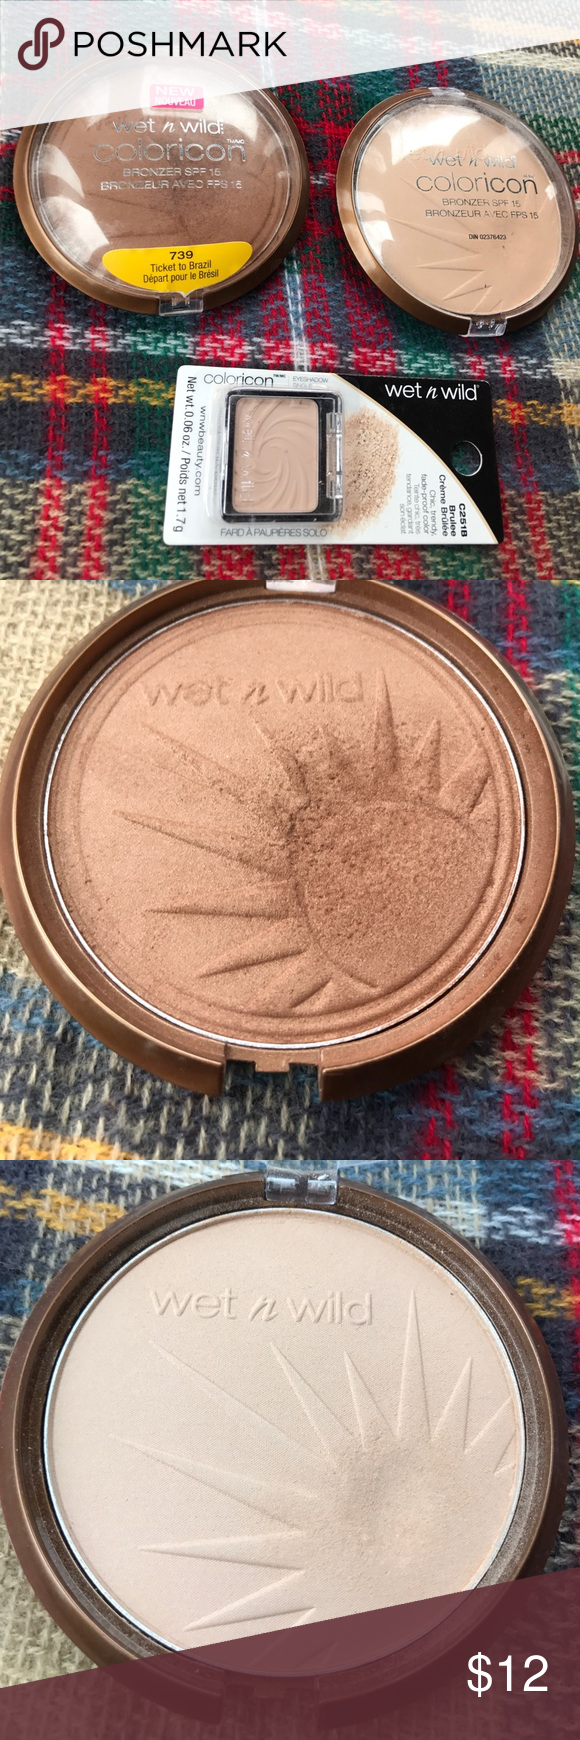 Wet N Wild Color Icon Bronzers And Brulé Eyeshadow Wet N Wild Makeup Wet N Wild Bronzer